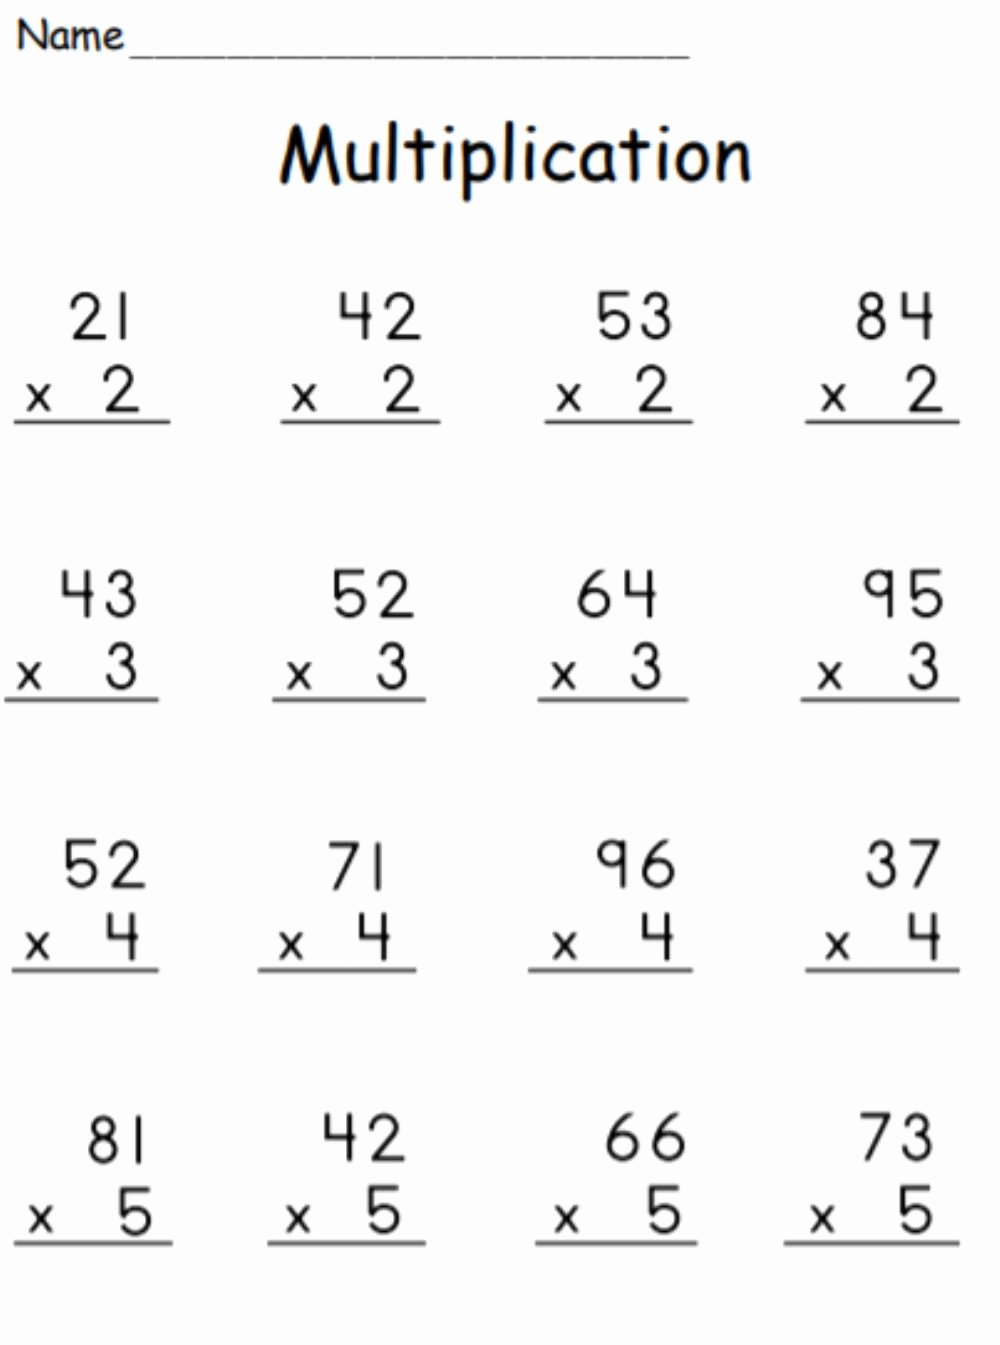 Multiplication Worksheets 2 Digit by 1 Fresh Multiplication 2 Digit by 1 Digit with Regrouping